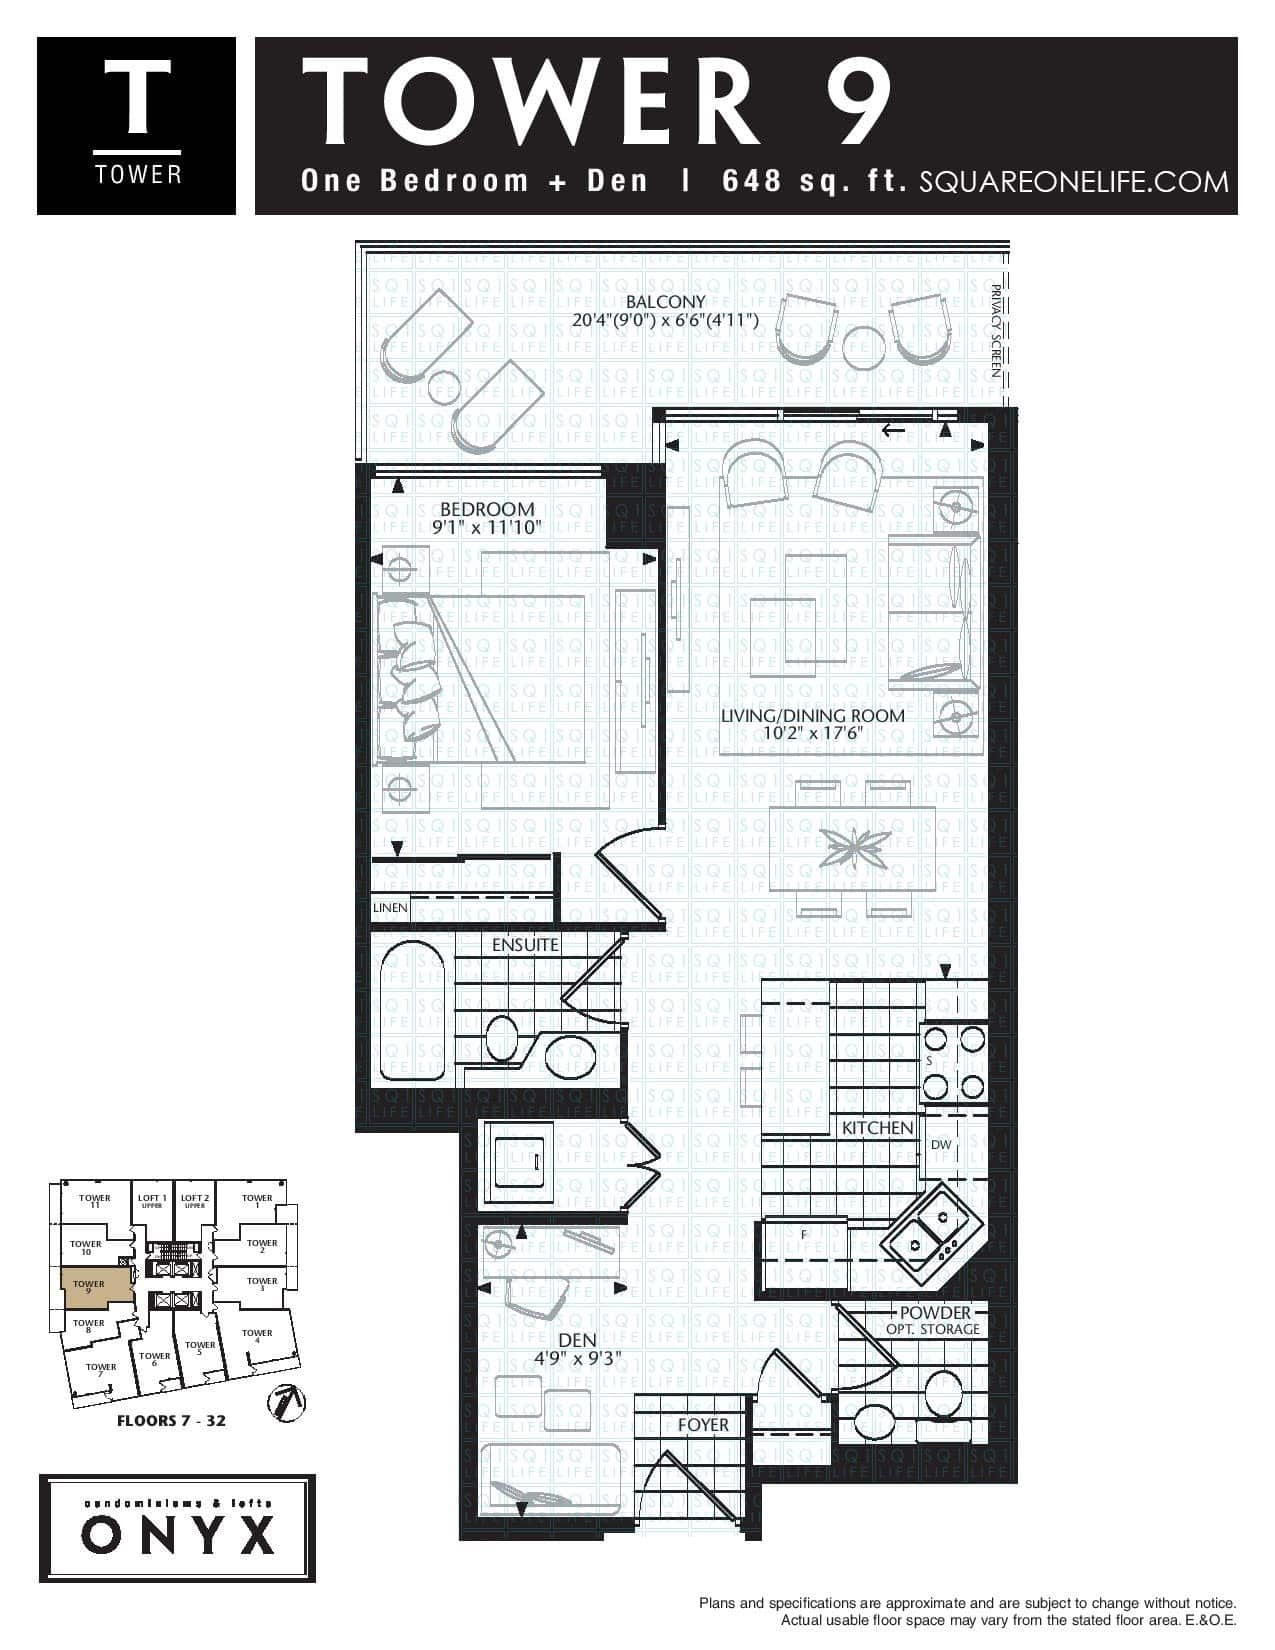 223-Webb-Dr-Onyx-Condo-Floorplan-Tower-9-1-Bed-1-Den-2-Bath onyx condo Onyx Condo 223 Webb Dr Onyx Condo Floorplan Tower 9 1 Bed 1 Den 2 Bath